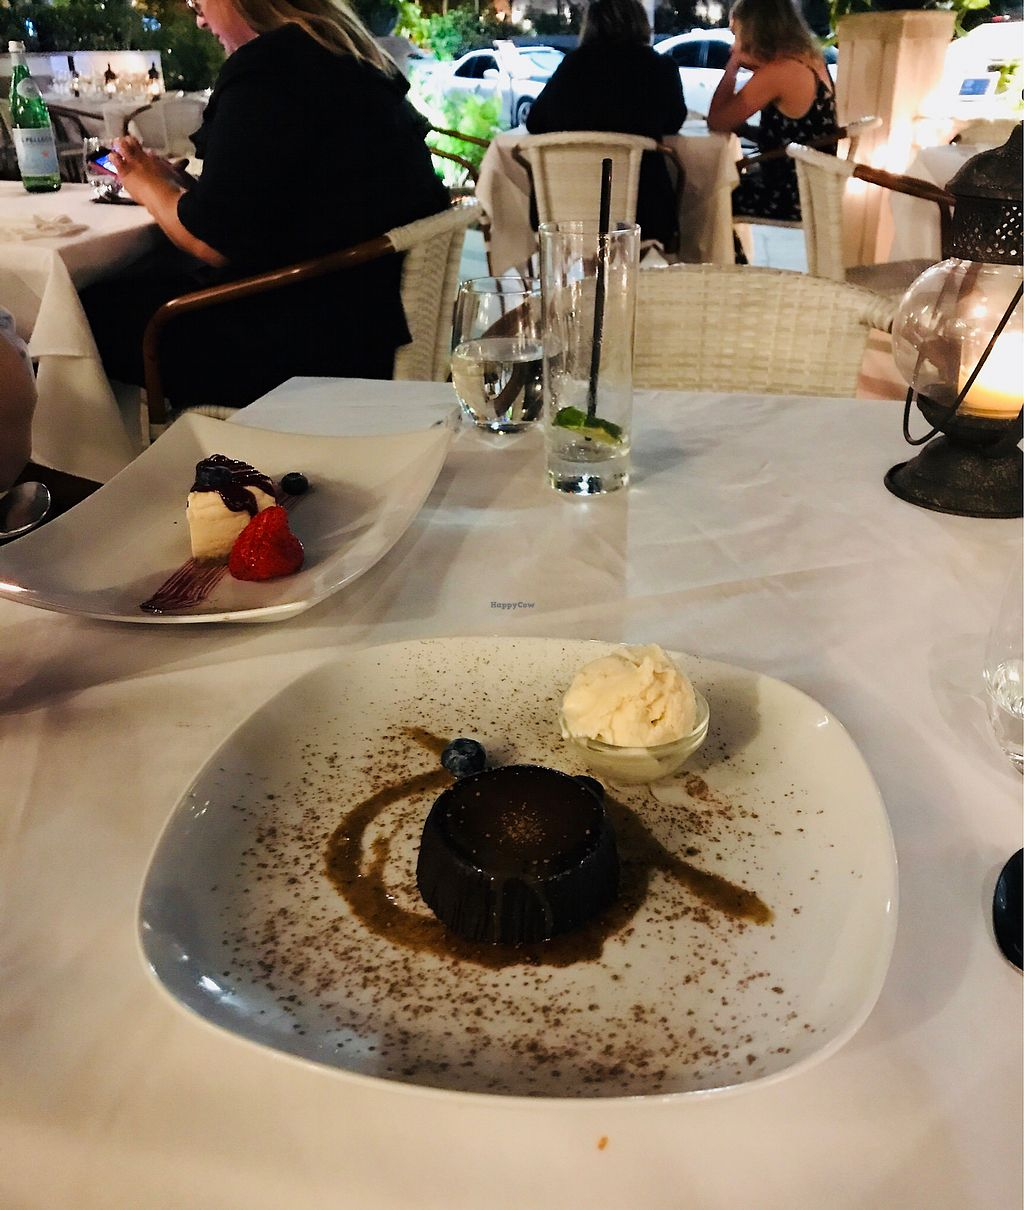 "Photo of Full Bloom  by <a href=""/members/profile/saracs"">saracs</a> <br/>Cheesecake with berries and caramel chocolate lava cake with gelato <br/> January 30, 2018  - <a href='/contact/abuse/image/61993/352568'>Report</a>"